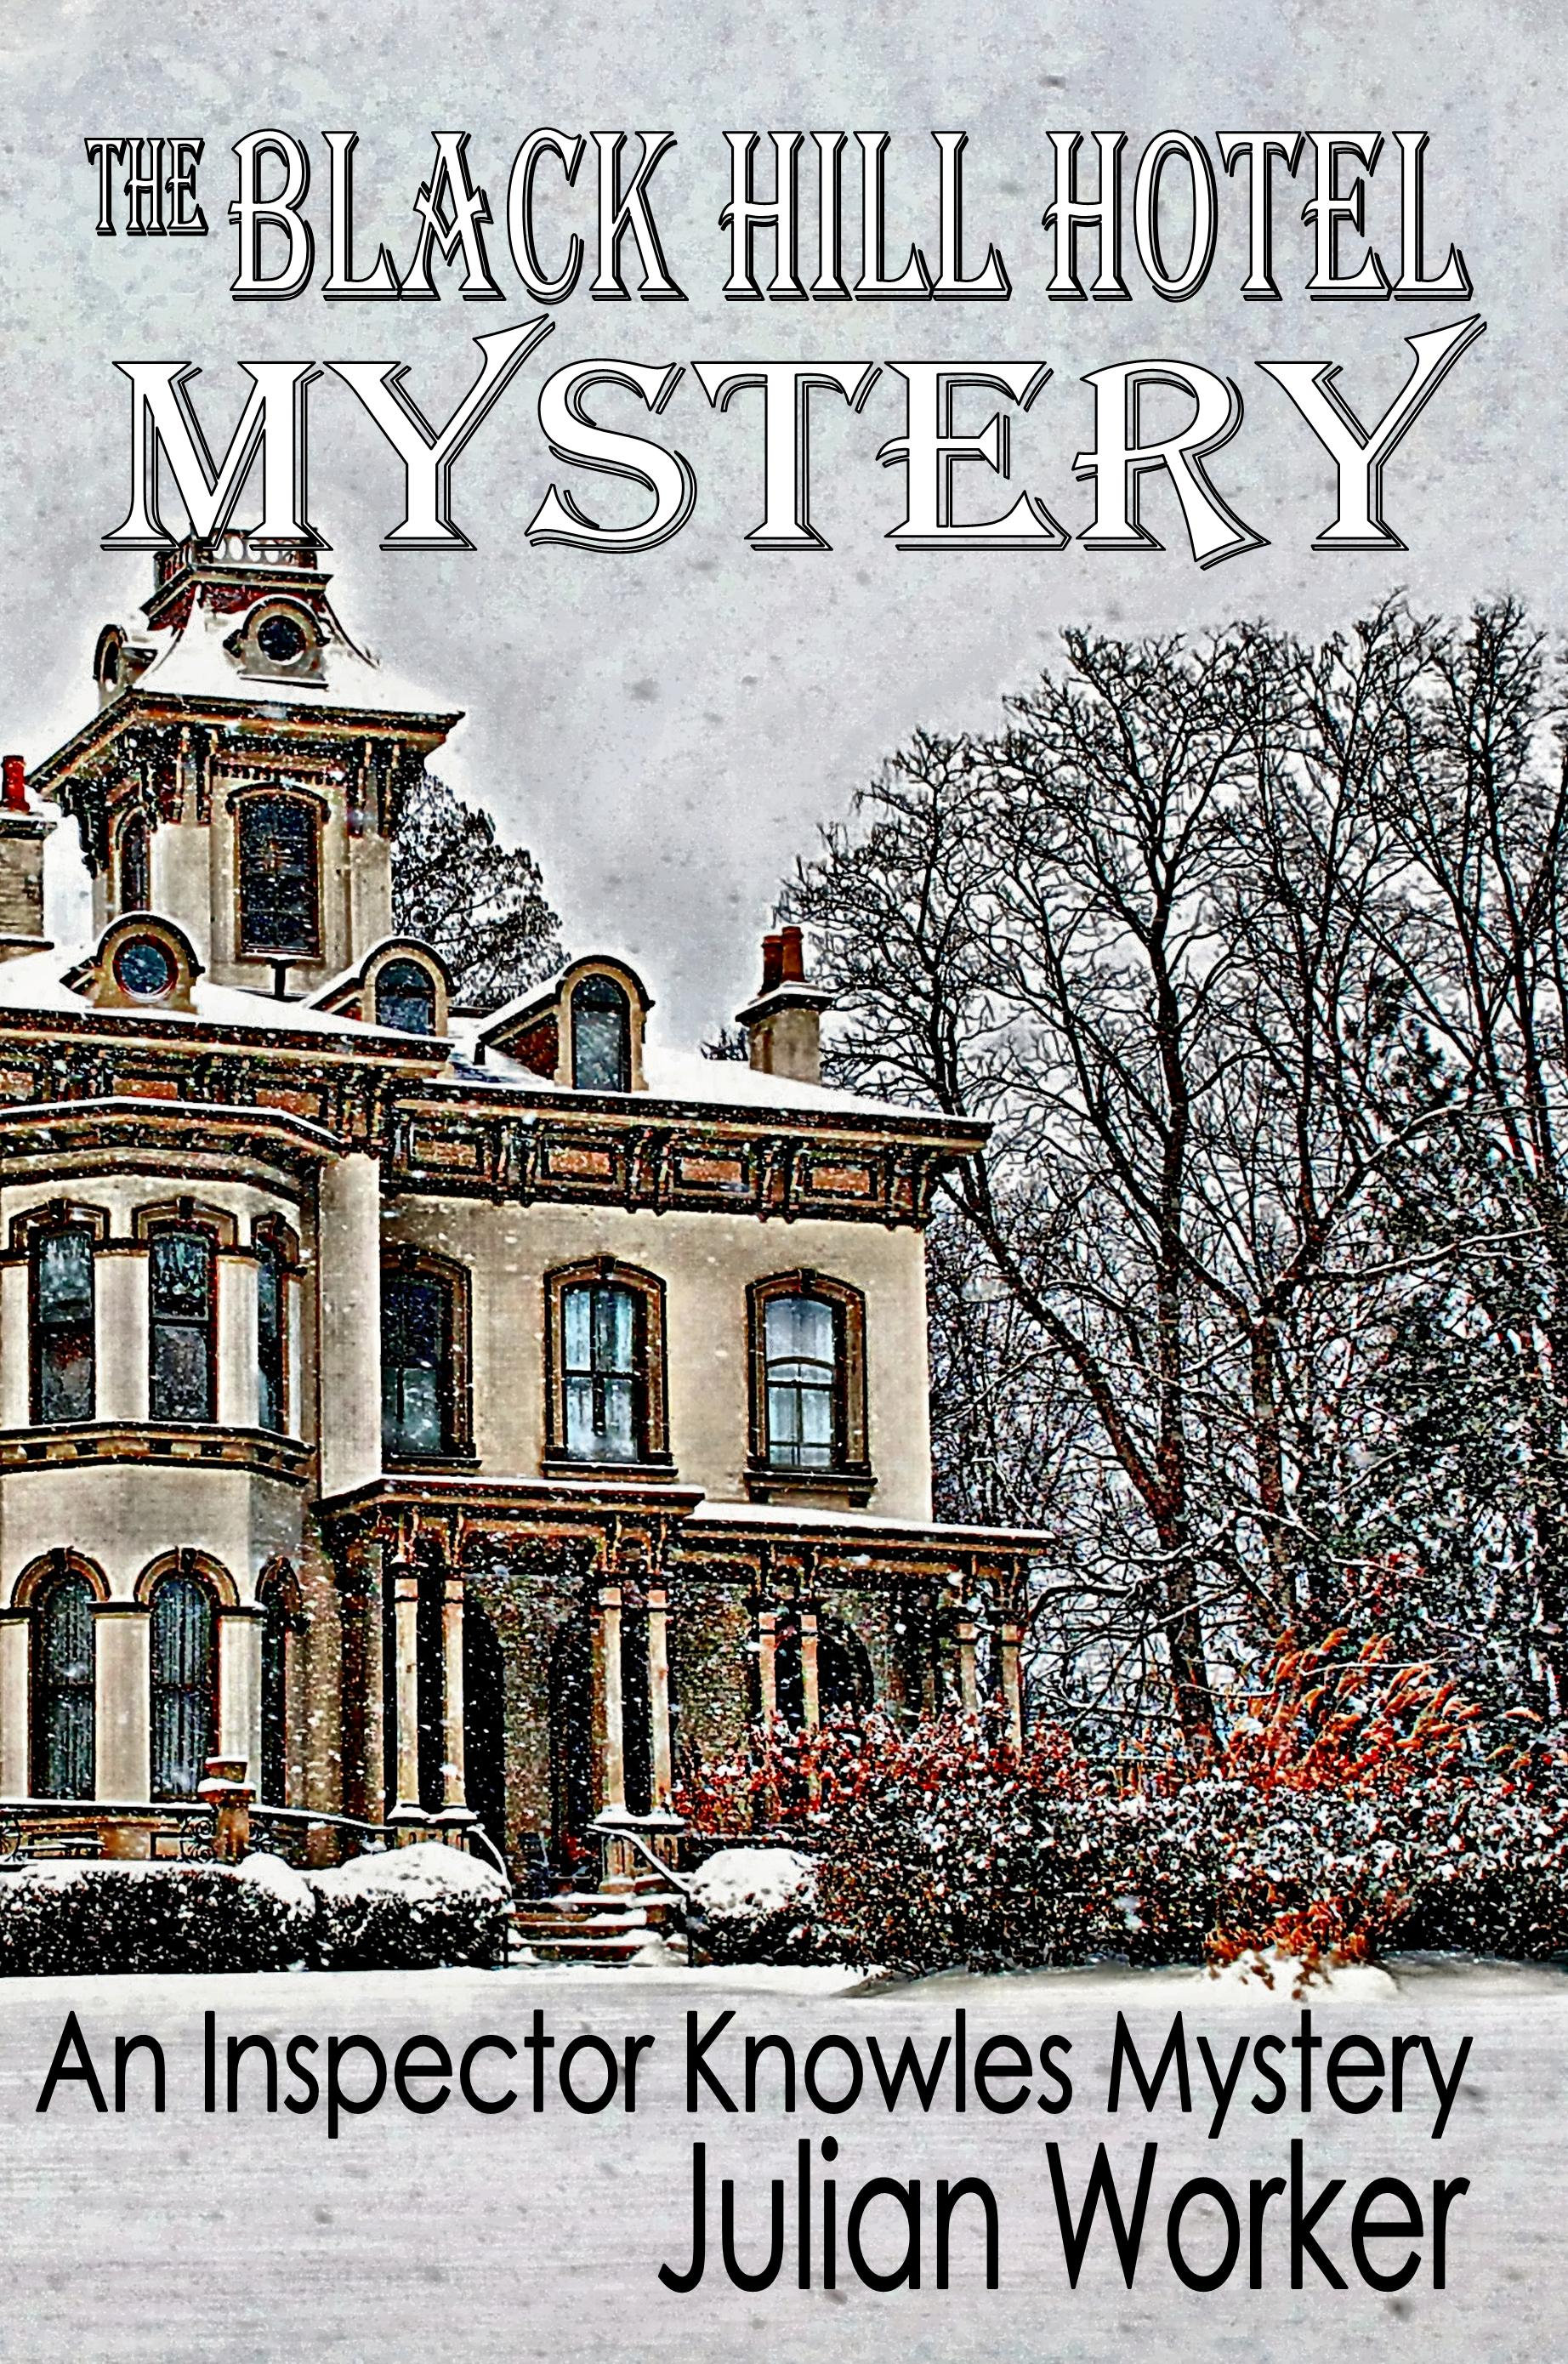 The Black Hill Hotel Mystery – 35